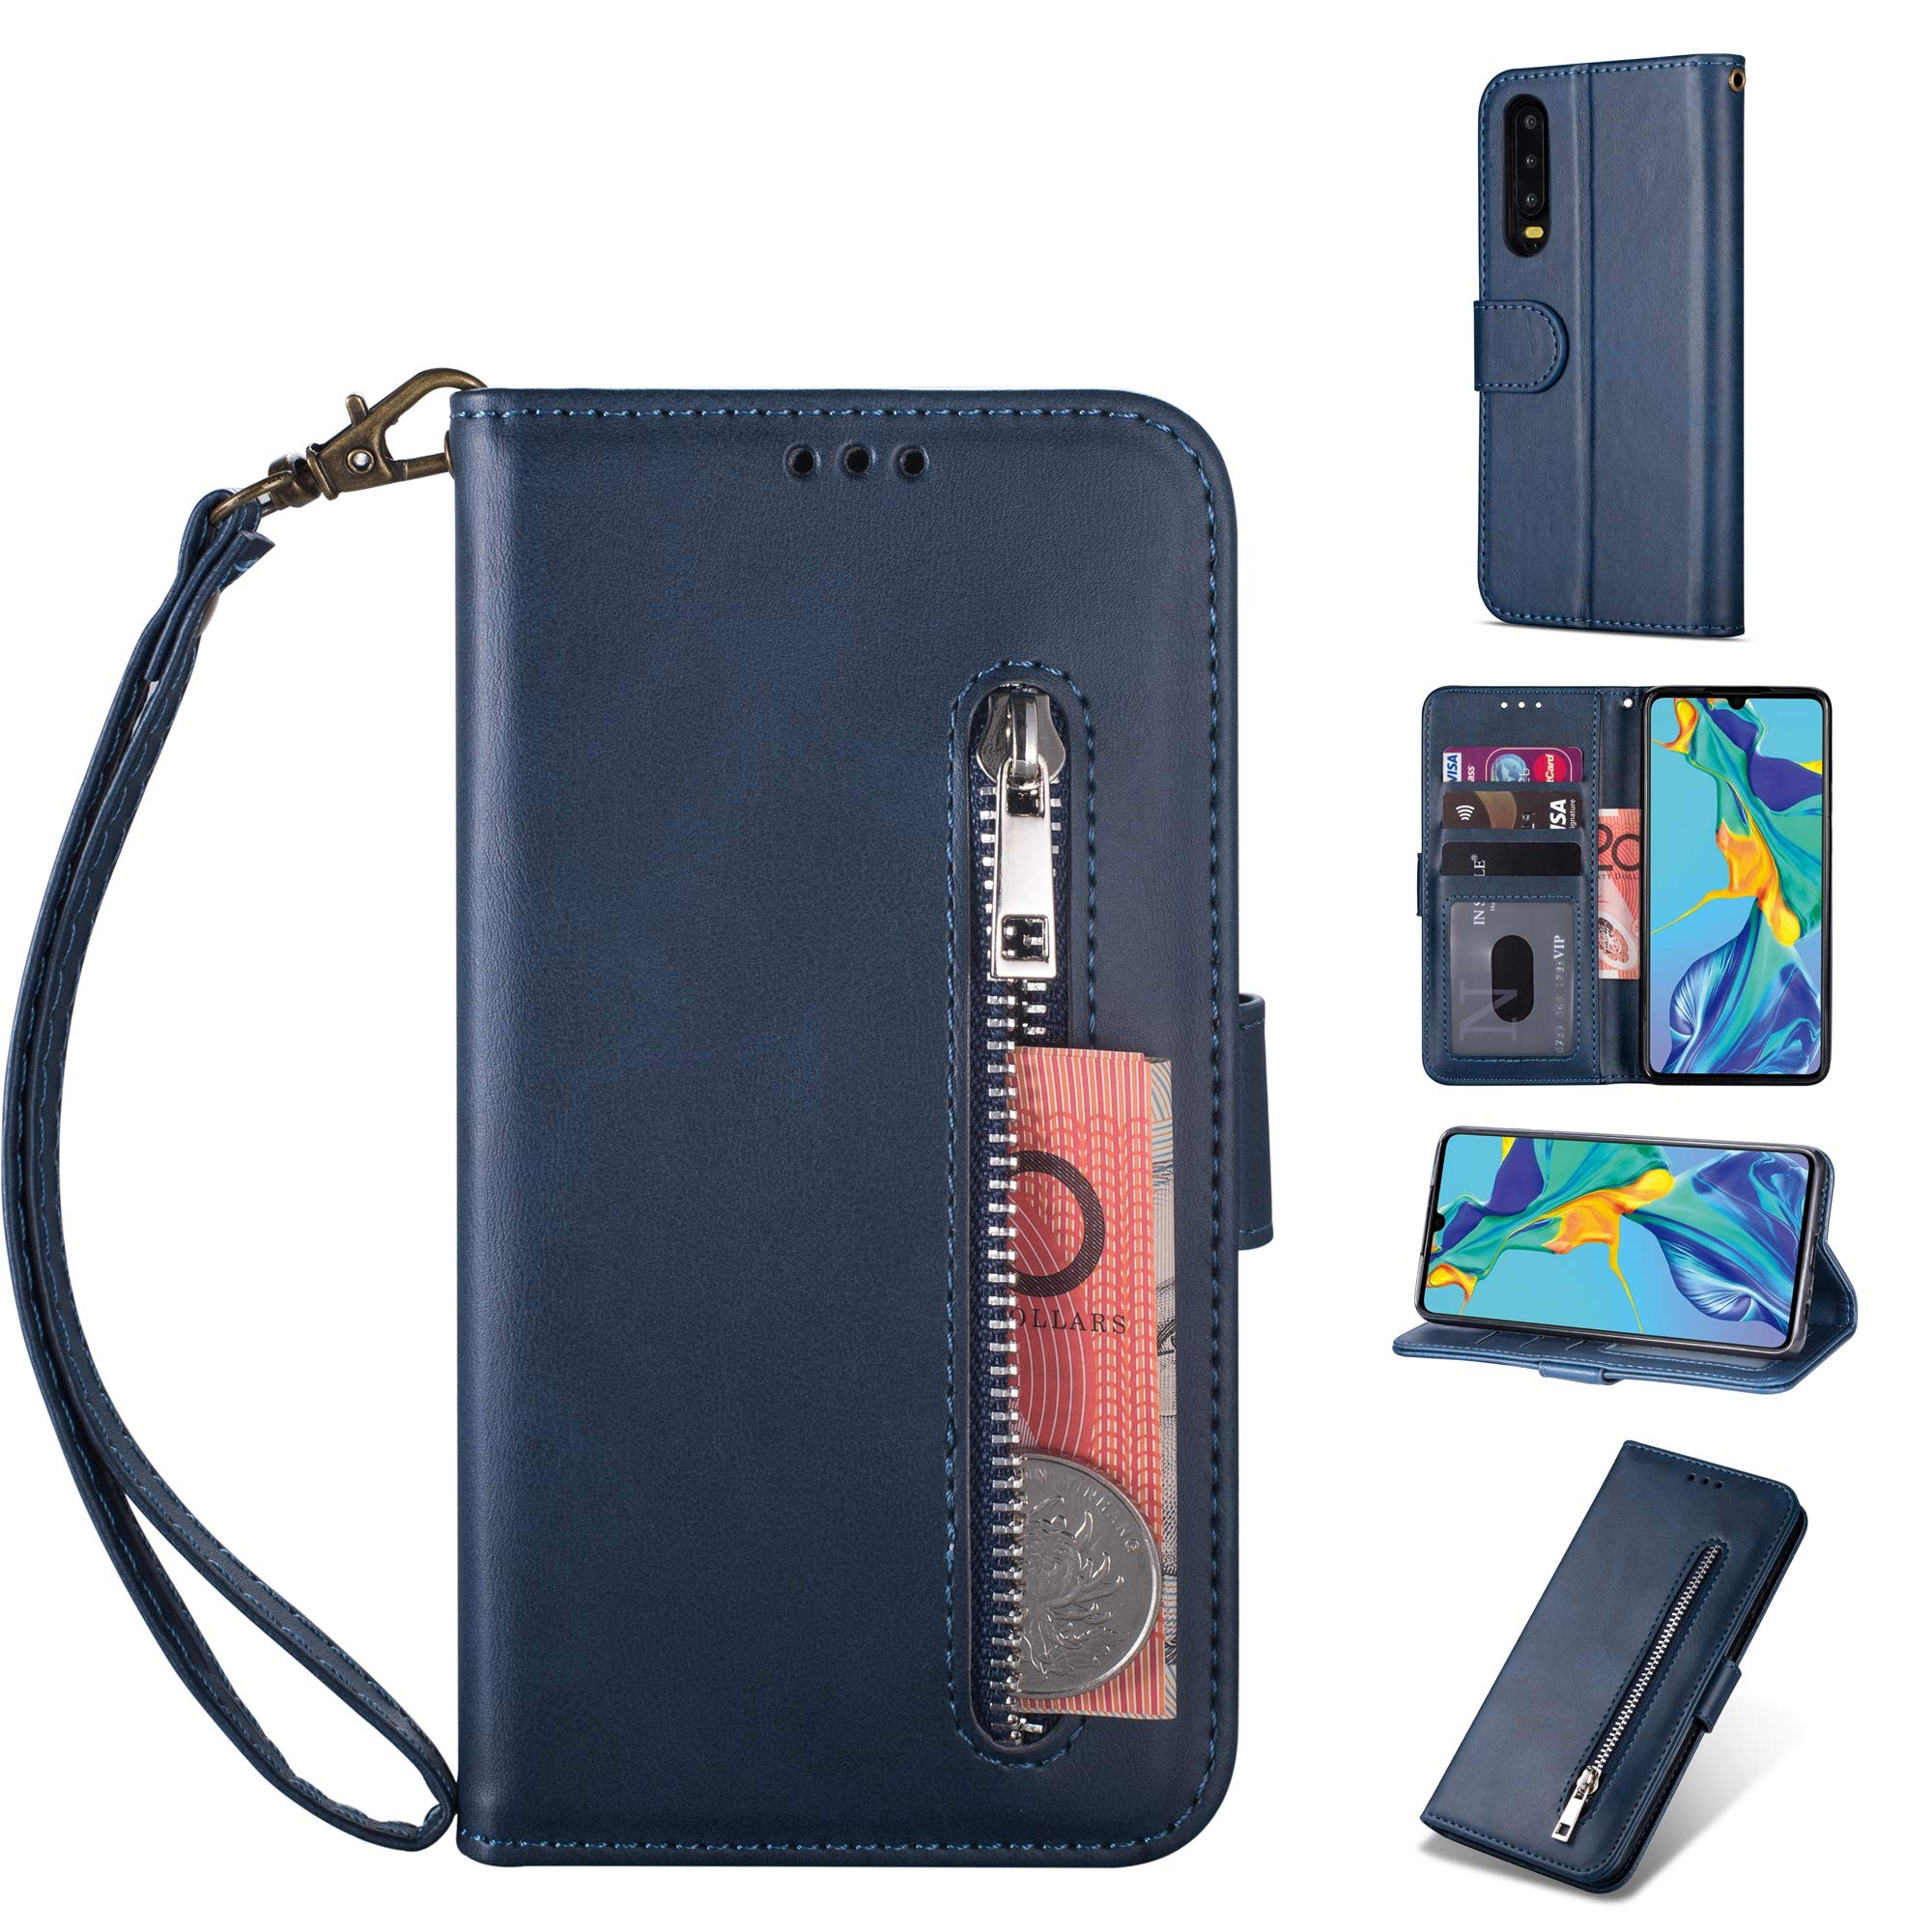 Zipper Wallet Case with Black Dual-use Pen for Huawei P30,Aoucase Money Coin Pocket Card Holder Shock Resistant Strap Purse PU Leather Case for Huawei P30 - Dark Blue